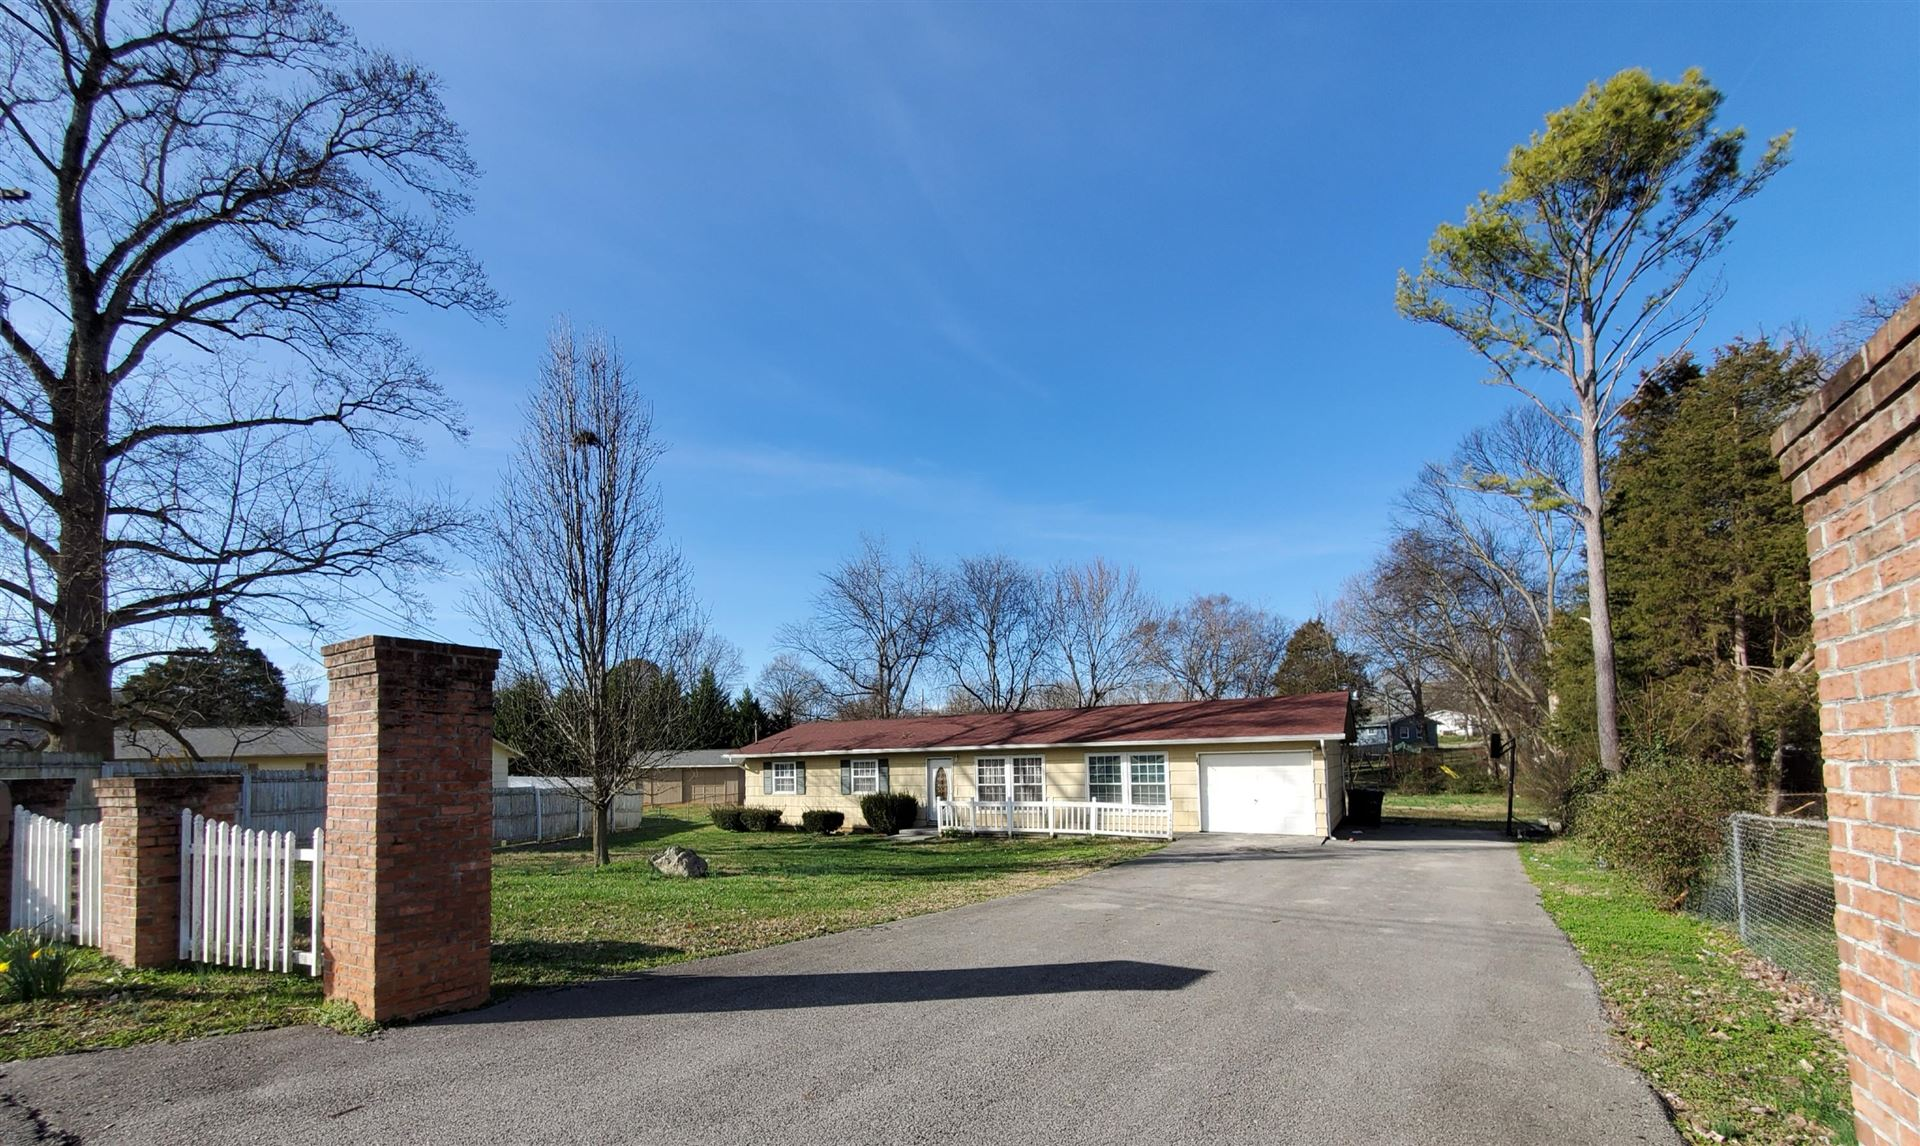 Photo of 3227 NW Lineback Rd, Knoxville, TN 37921 (MLS # 1108363)